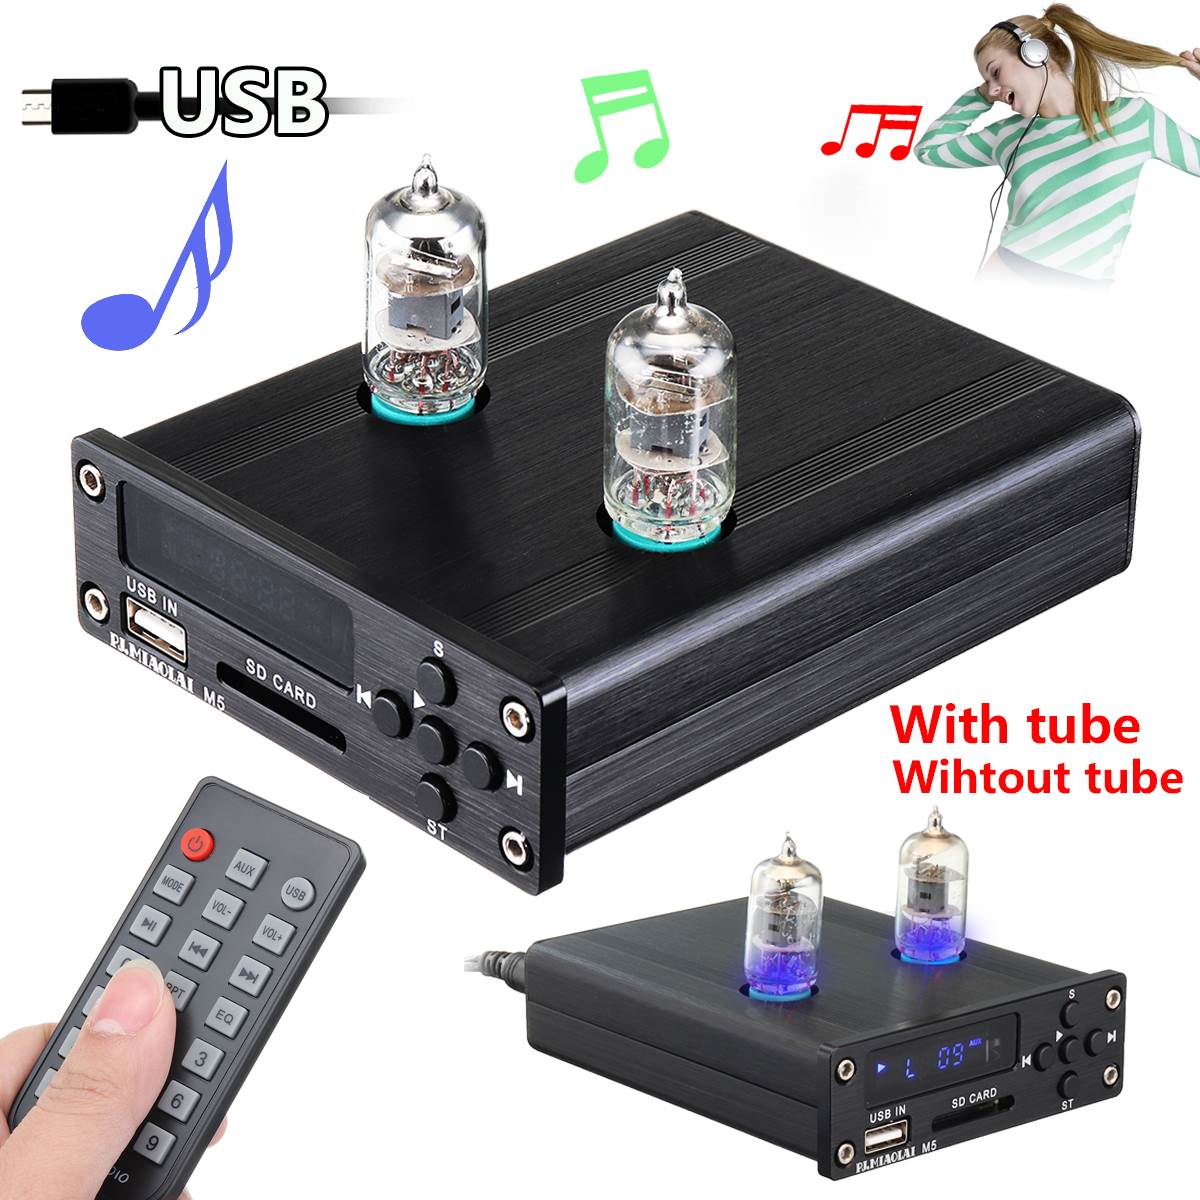 6J1 Vacuum Tube Pre-Amplifier Stereo Preamp USB DAC HiFi Lossless Music Player Durable Quality music hall xiangsheng dac 01a xmos u8 usb dac tube stereo d a converter headphone amplifier